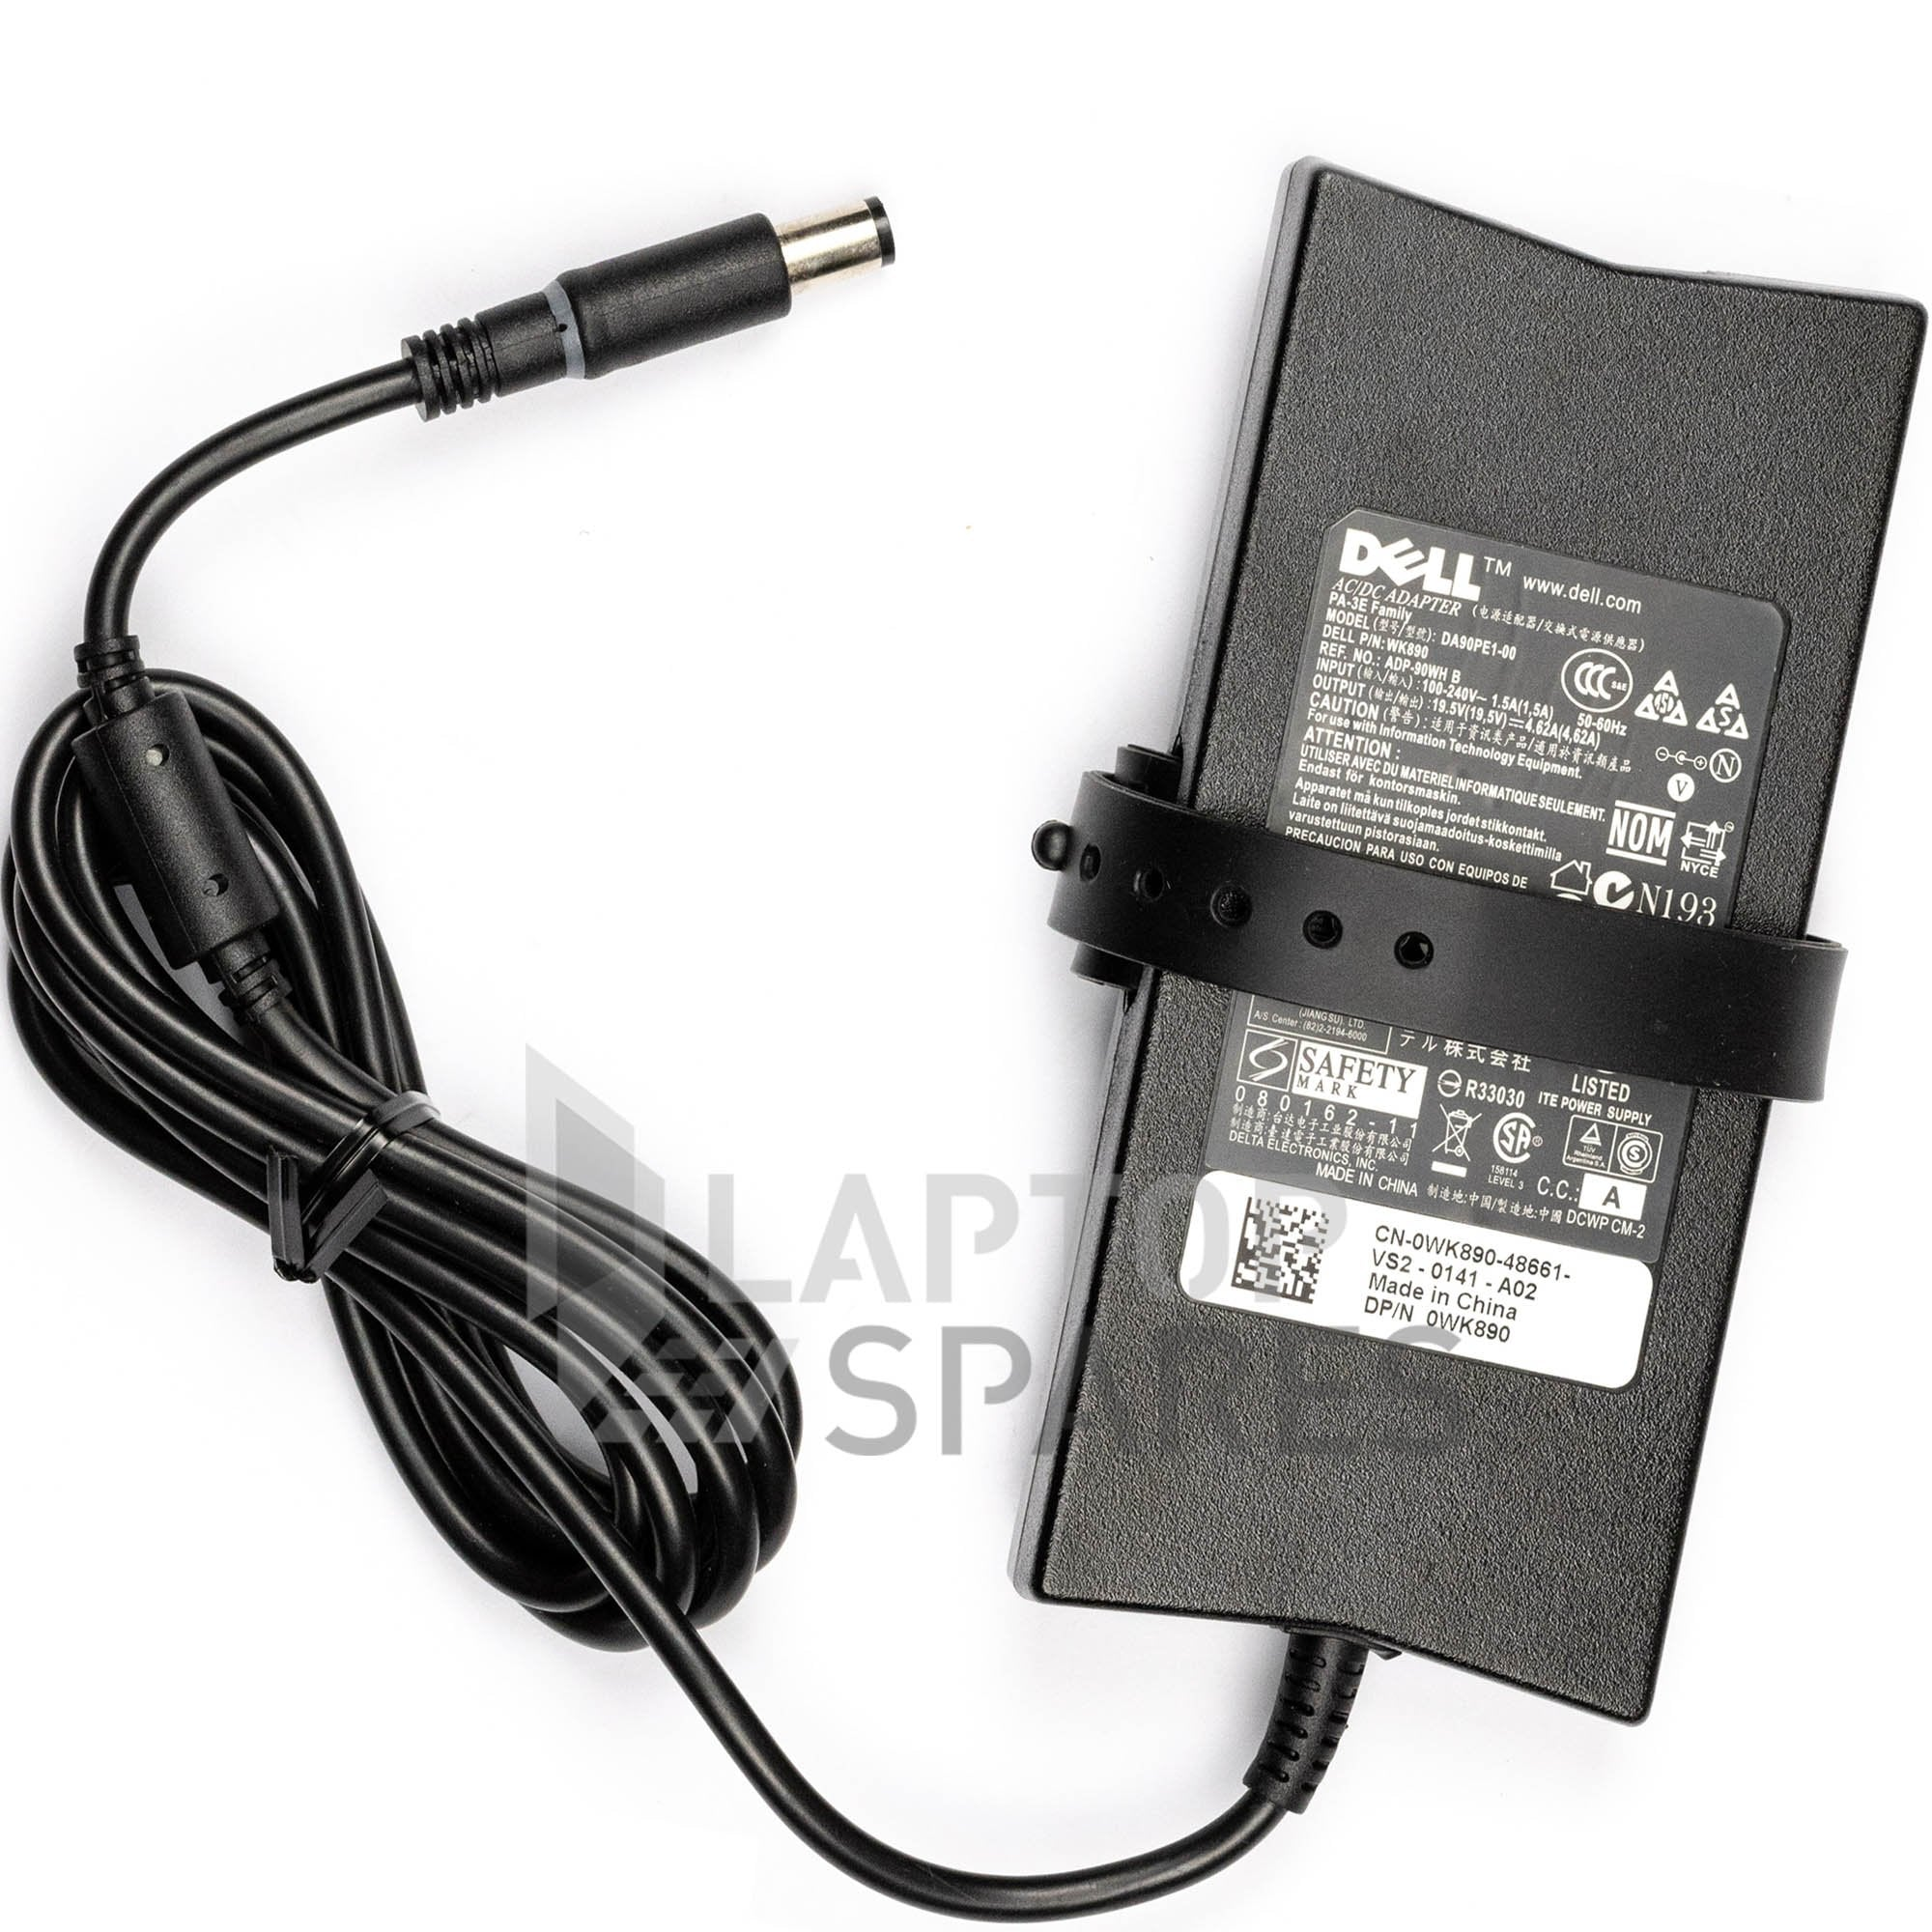 Dell Inspiron 15 1564 1570 Laptop Slim AC Adapter Charger